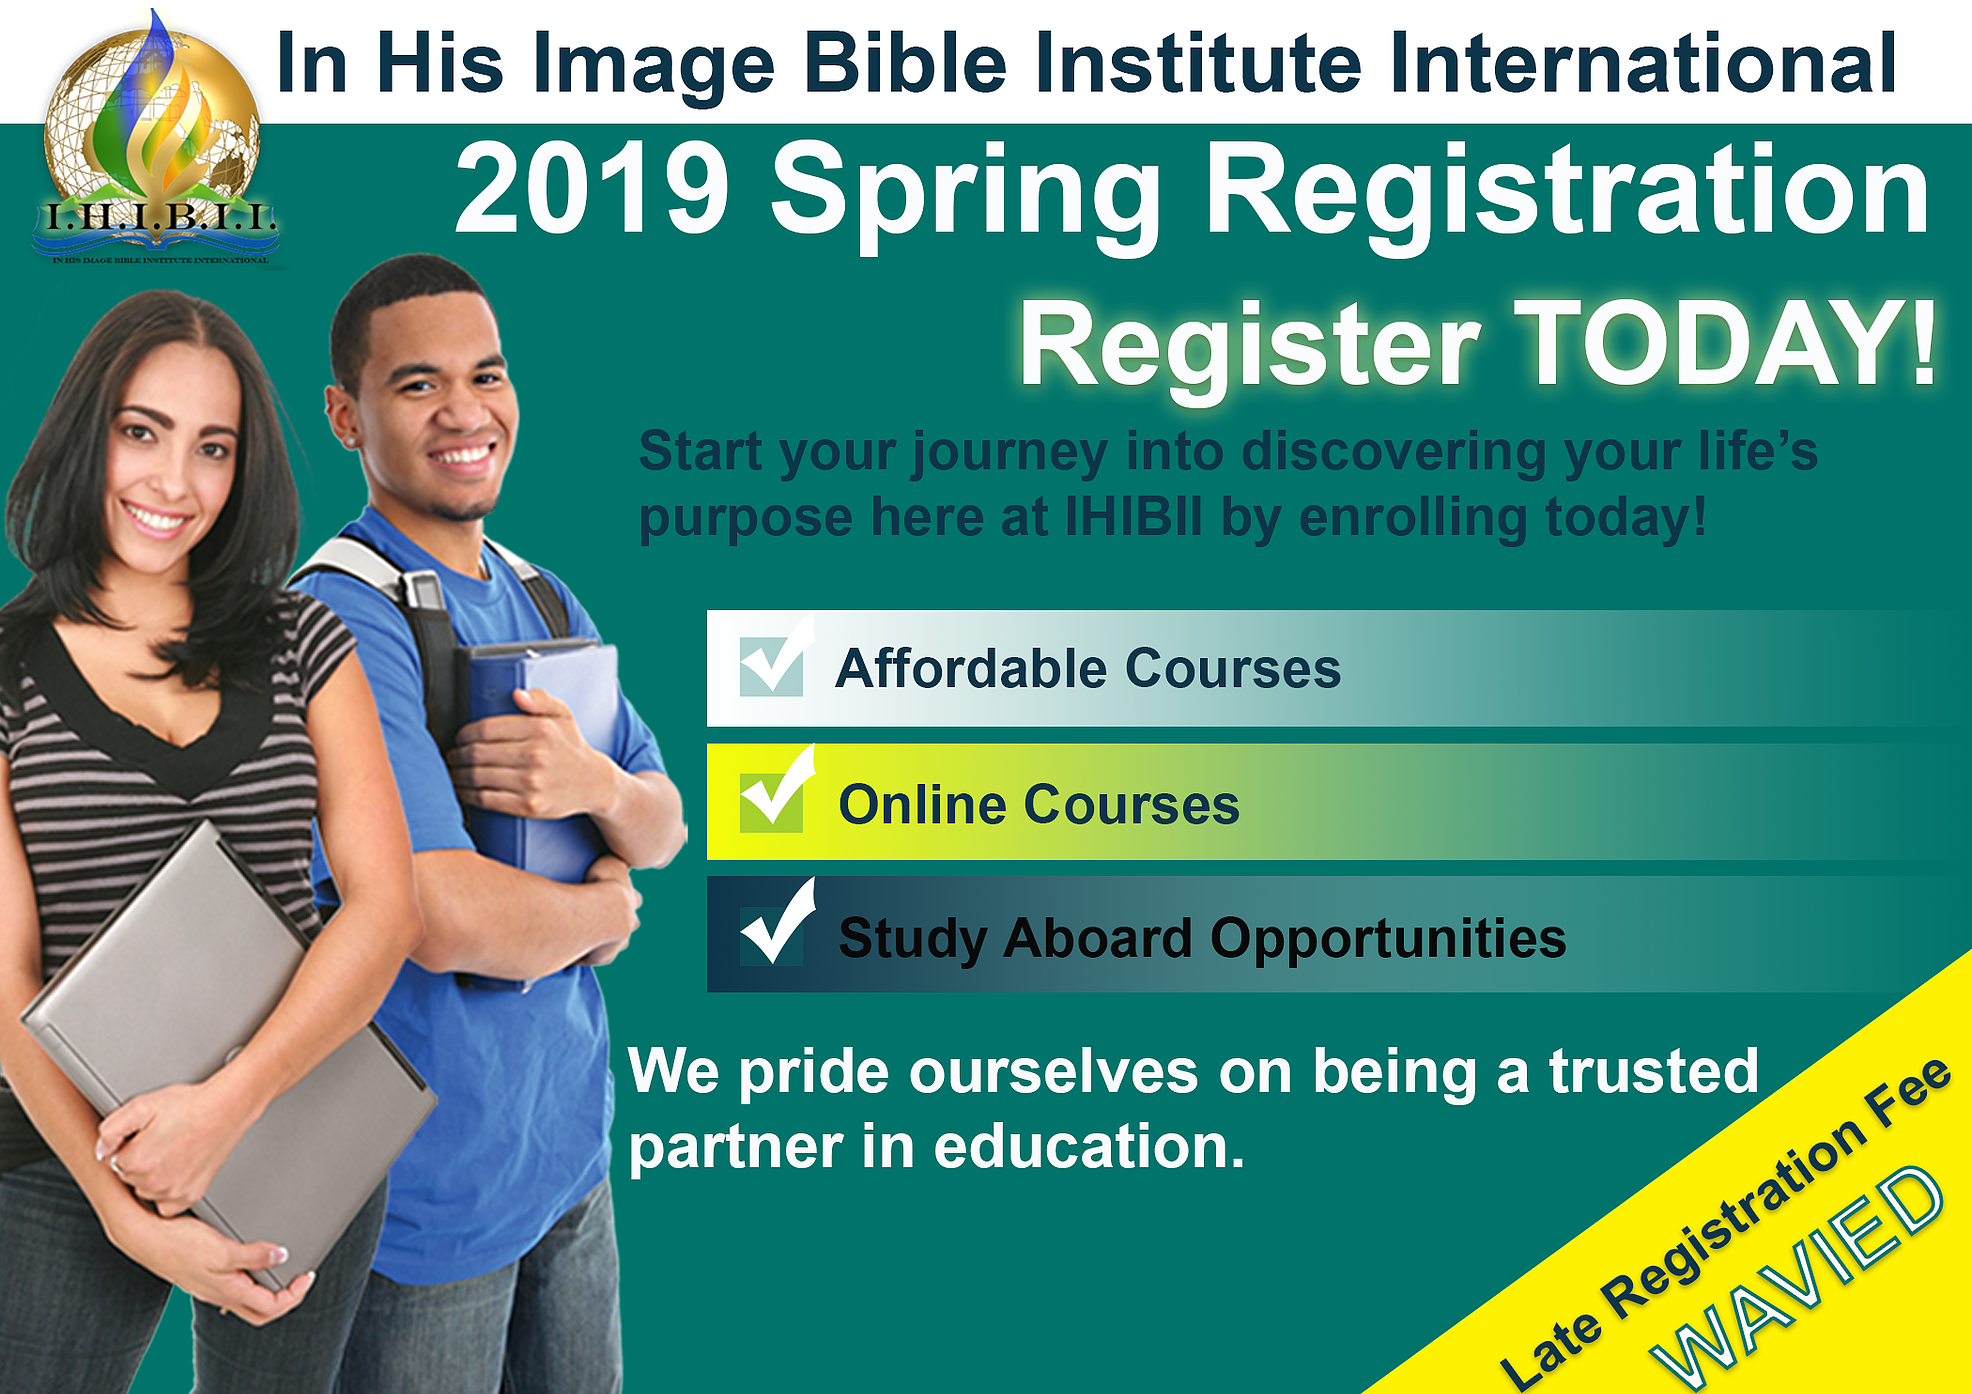 IHIBII Registration Flier